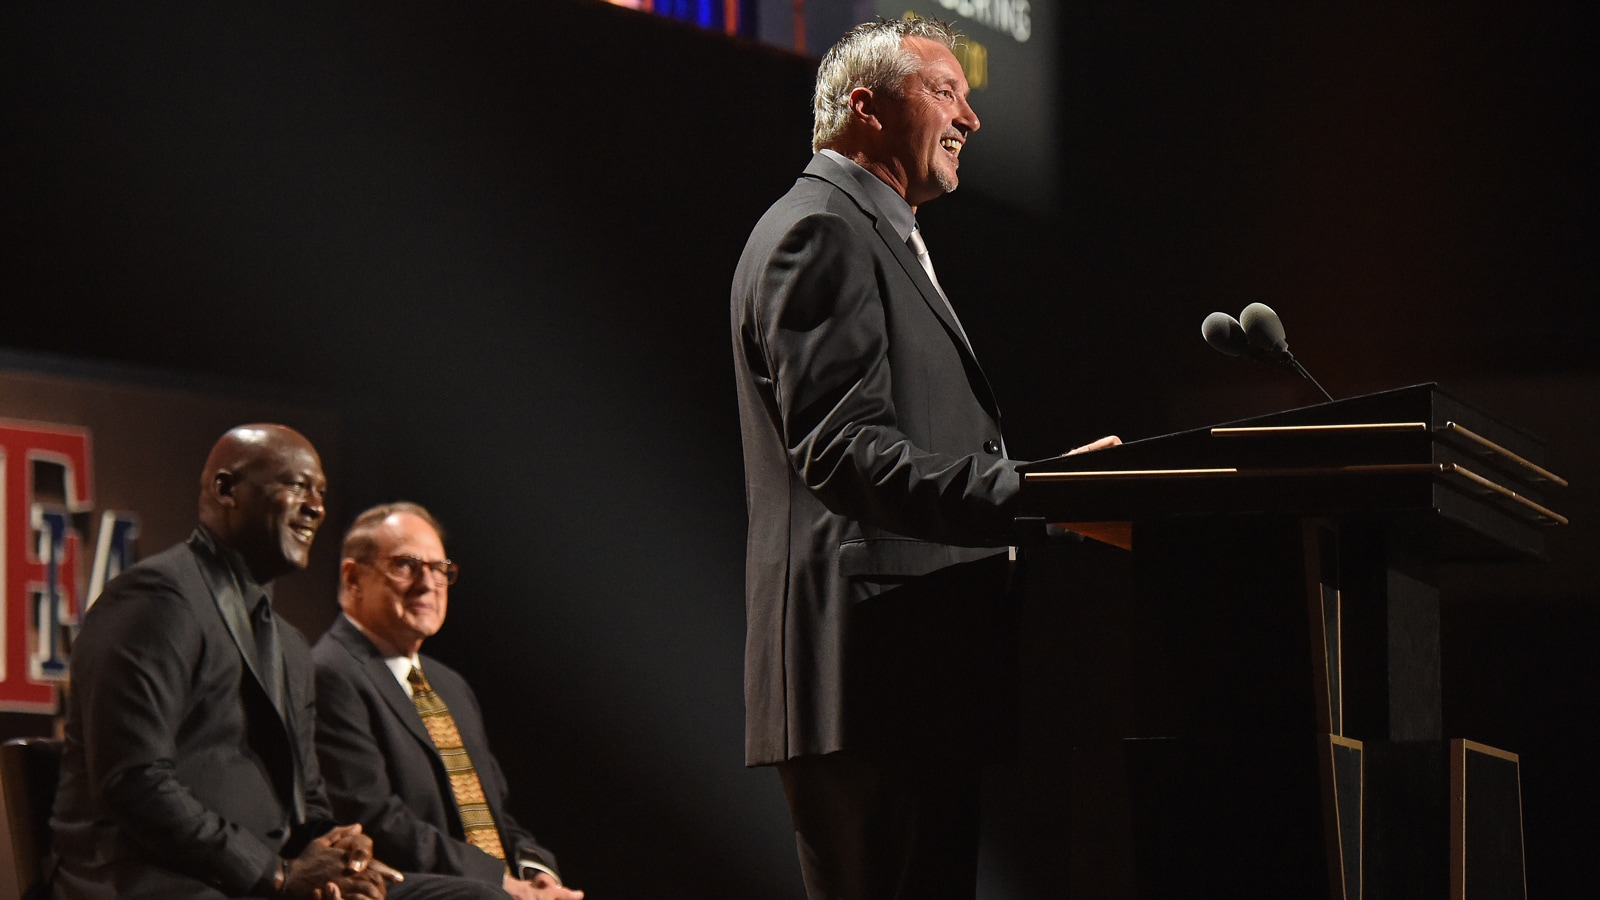 Toni Kukoc speaks during his Hall of Fame induction ceremony as his presenters Michael Jordan and Jerry Reinsdorf looks on.